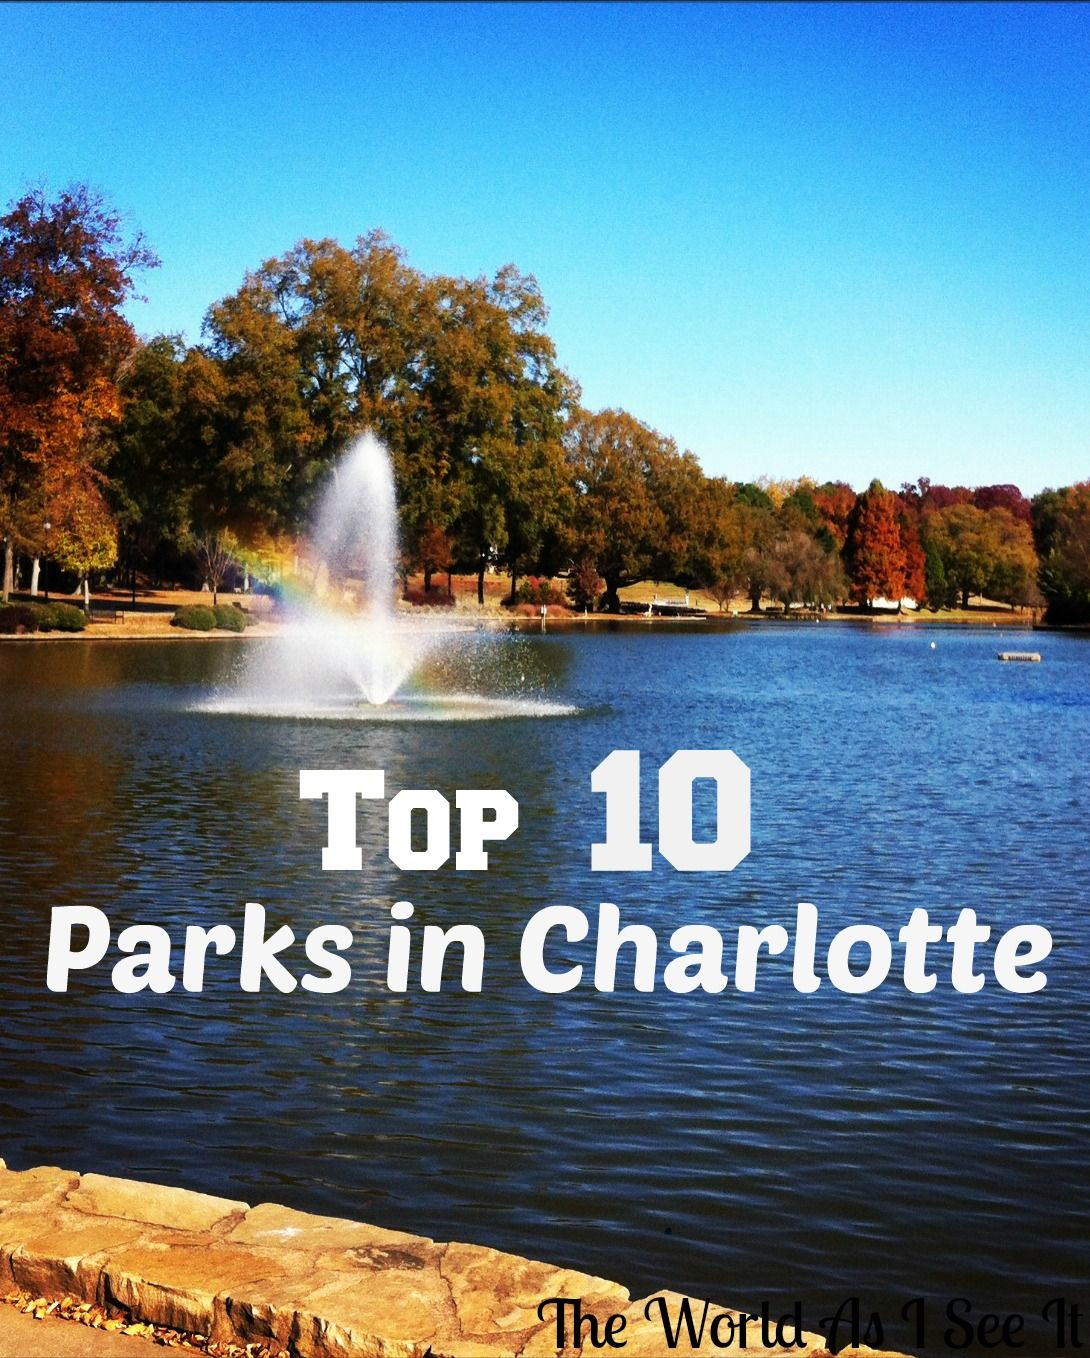 Famous Places In North California: Charlotte Parks - Top 10 Parks